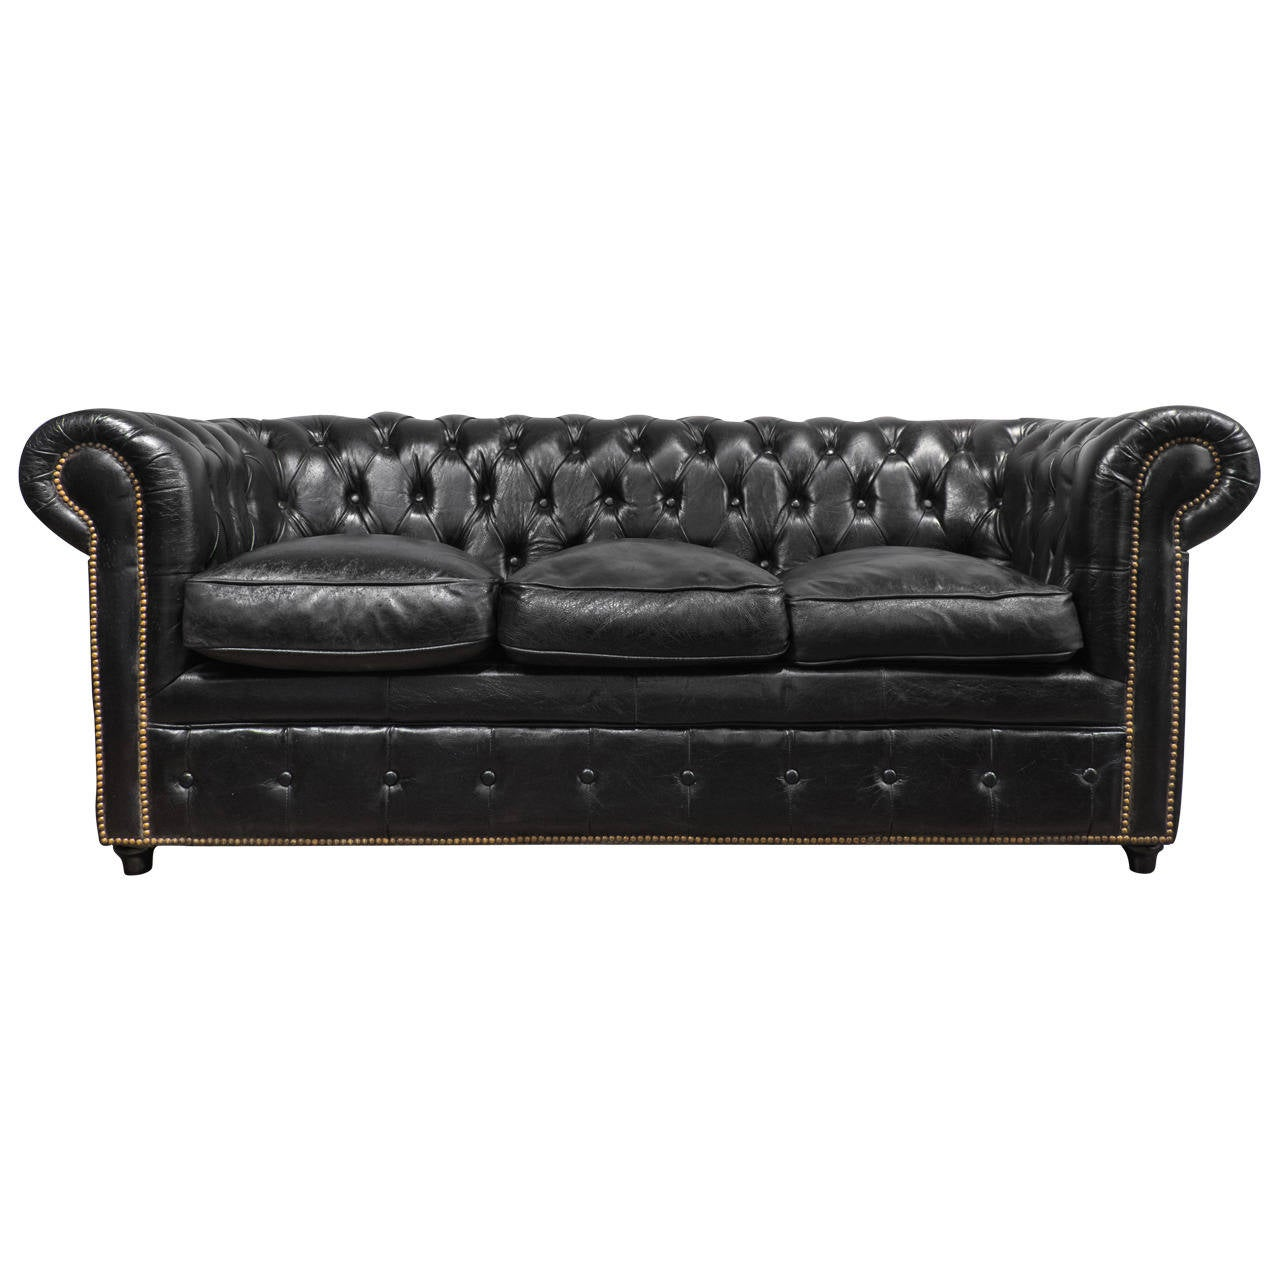 Awesome Vintage Black Leather Chesterfield Sofa At 1stdibs